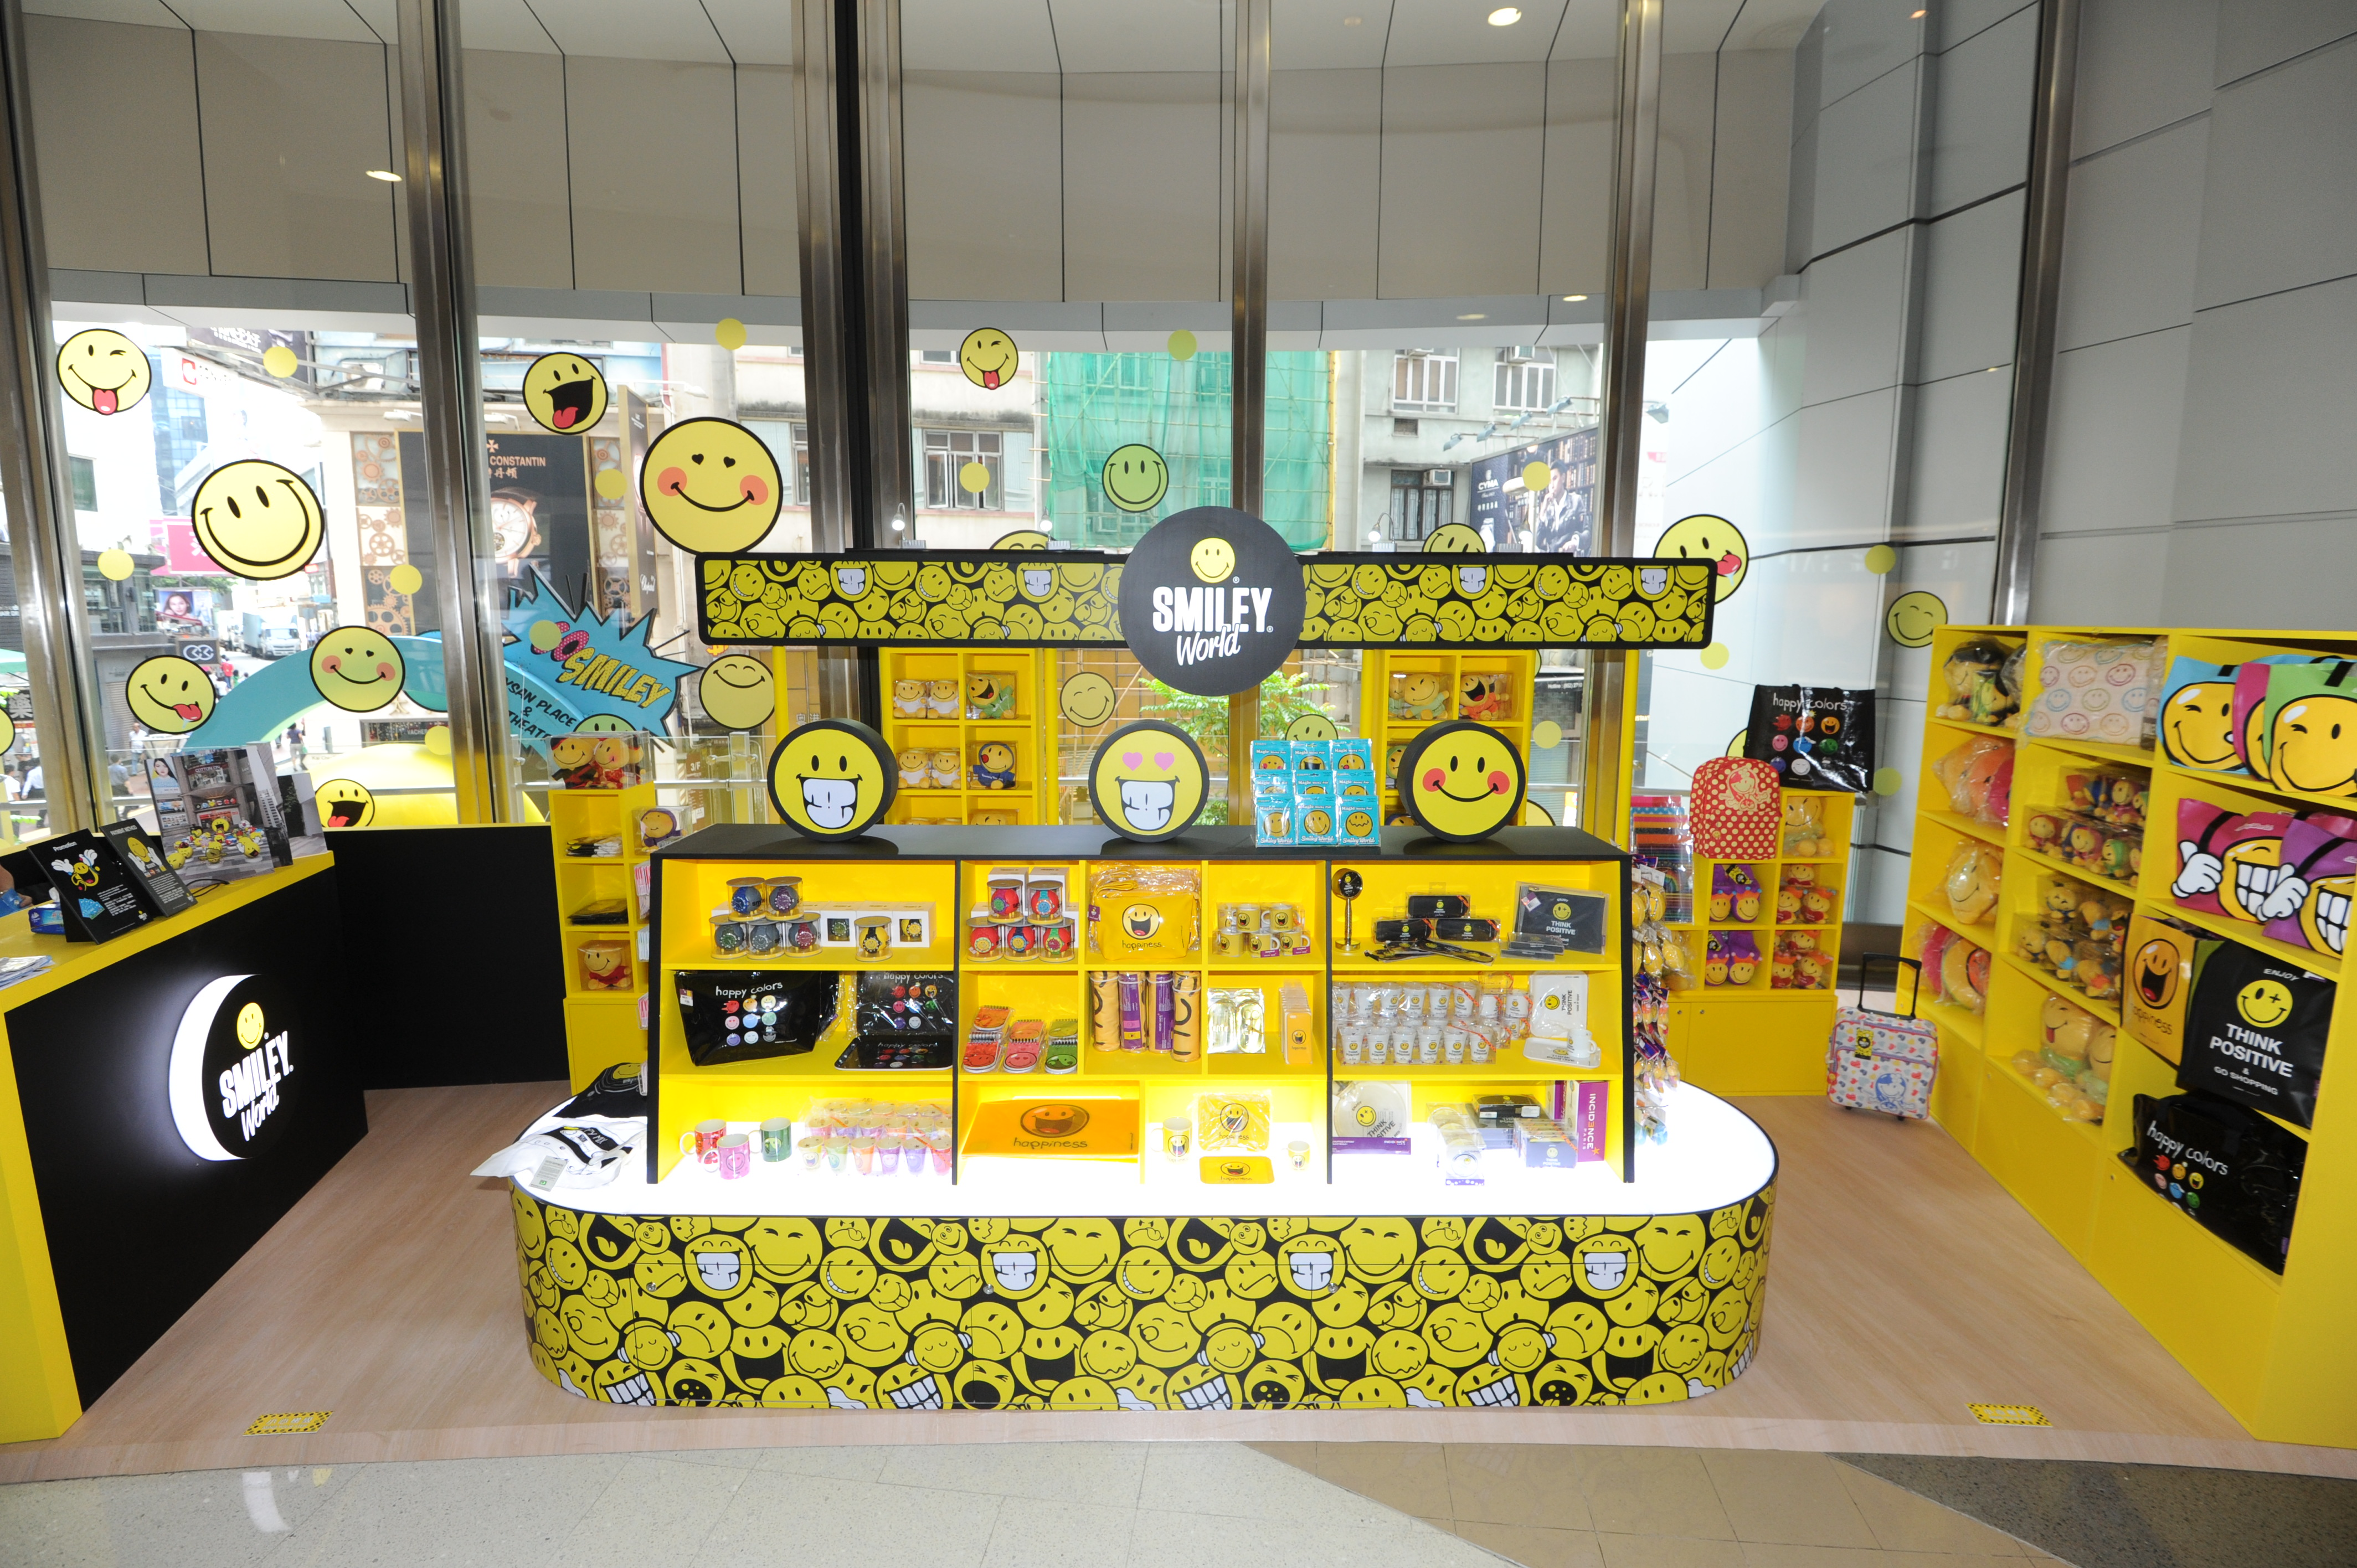 Smiley open pop up store in hong kong smiley blog for Online art stores us